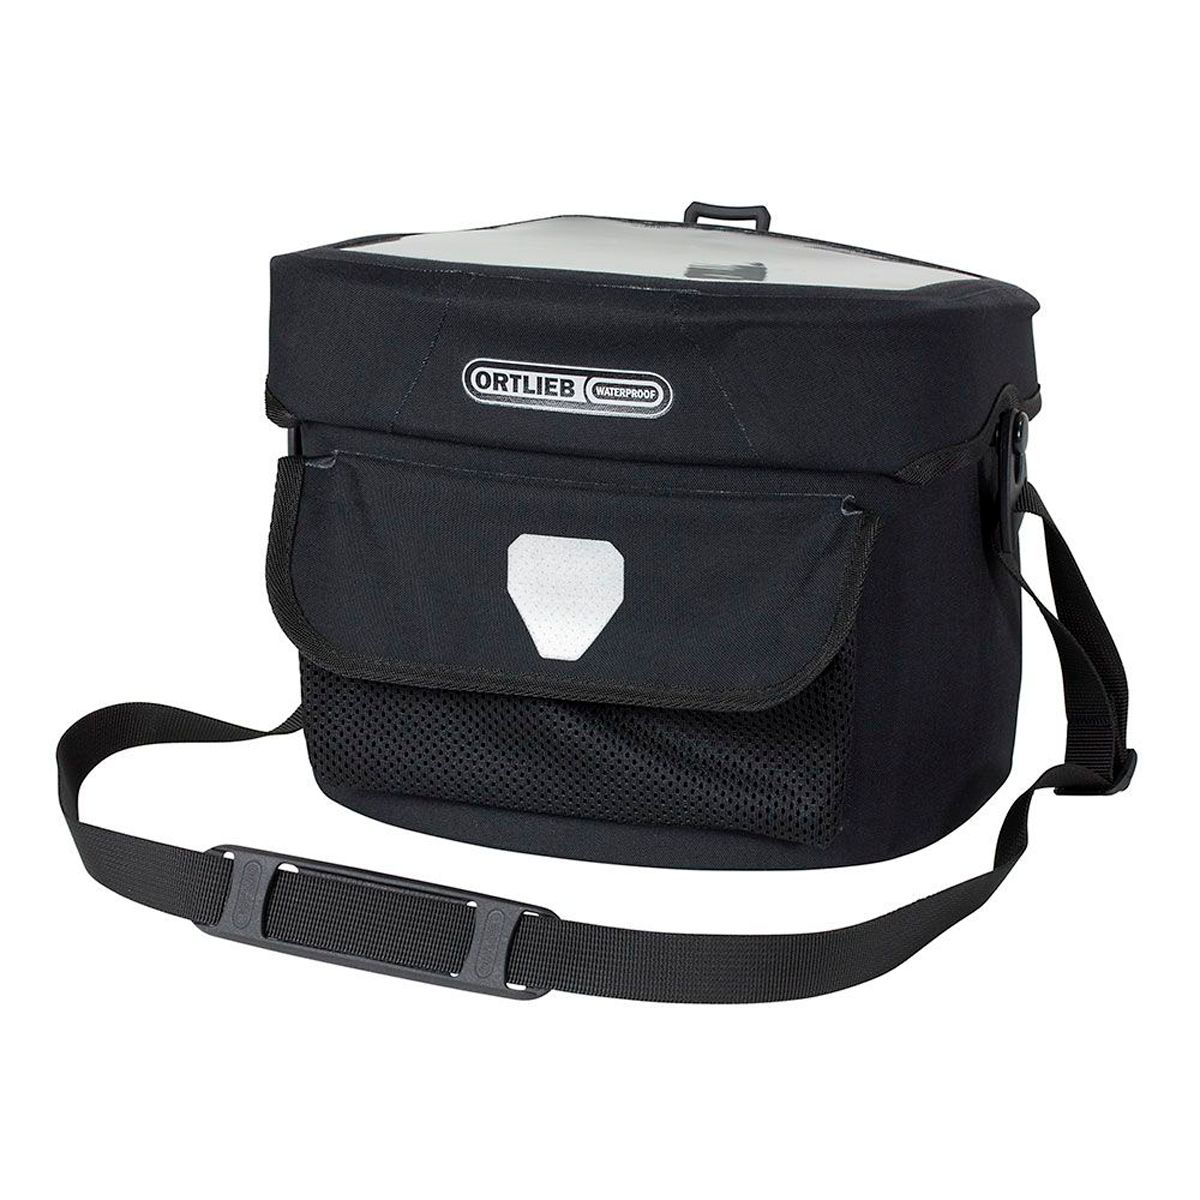 Ultimate 6 Pro handlebar bag